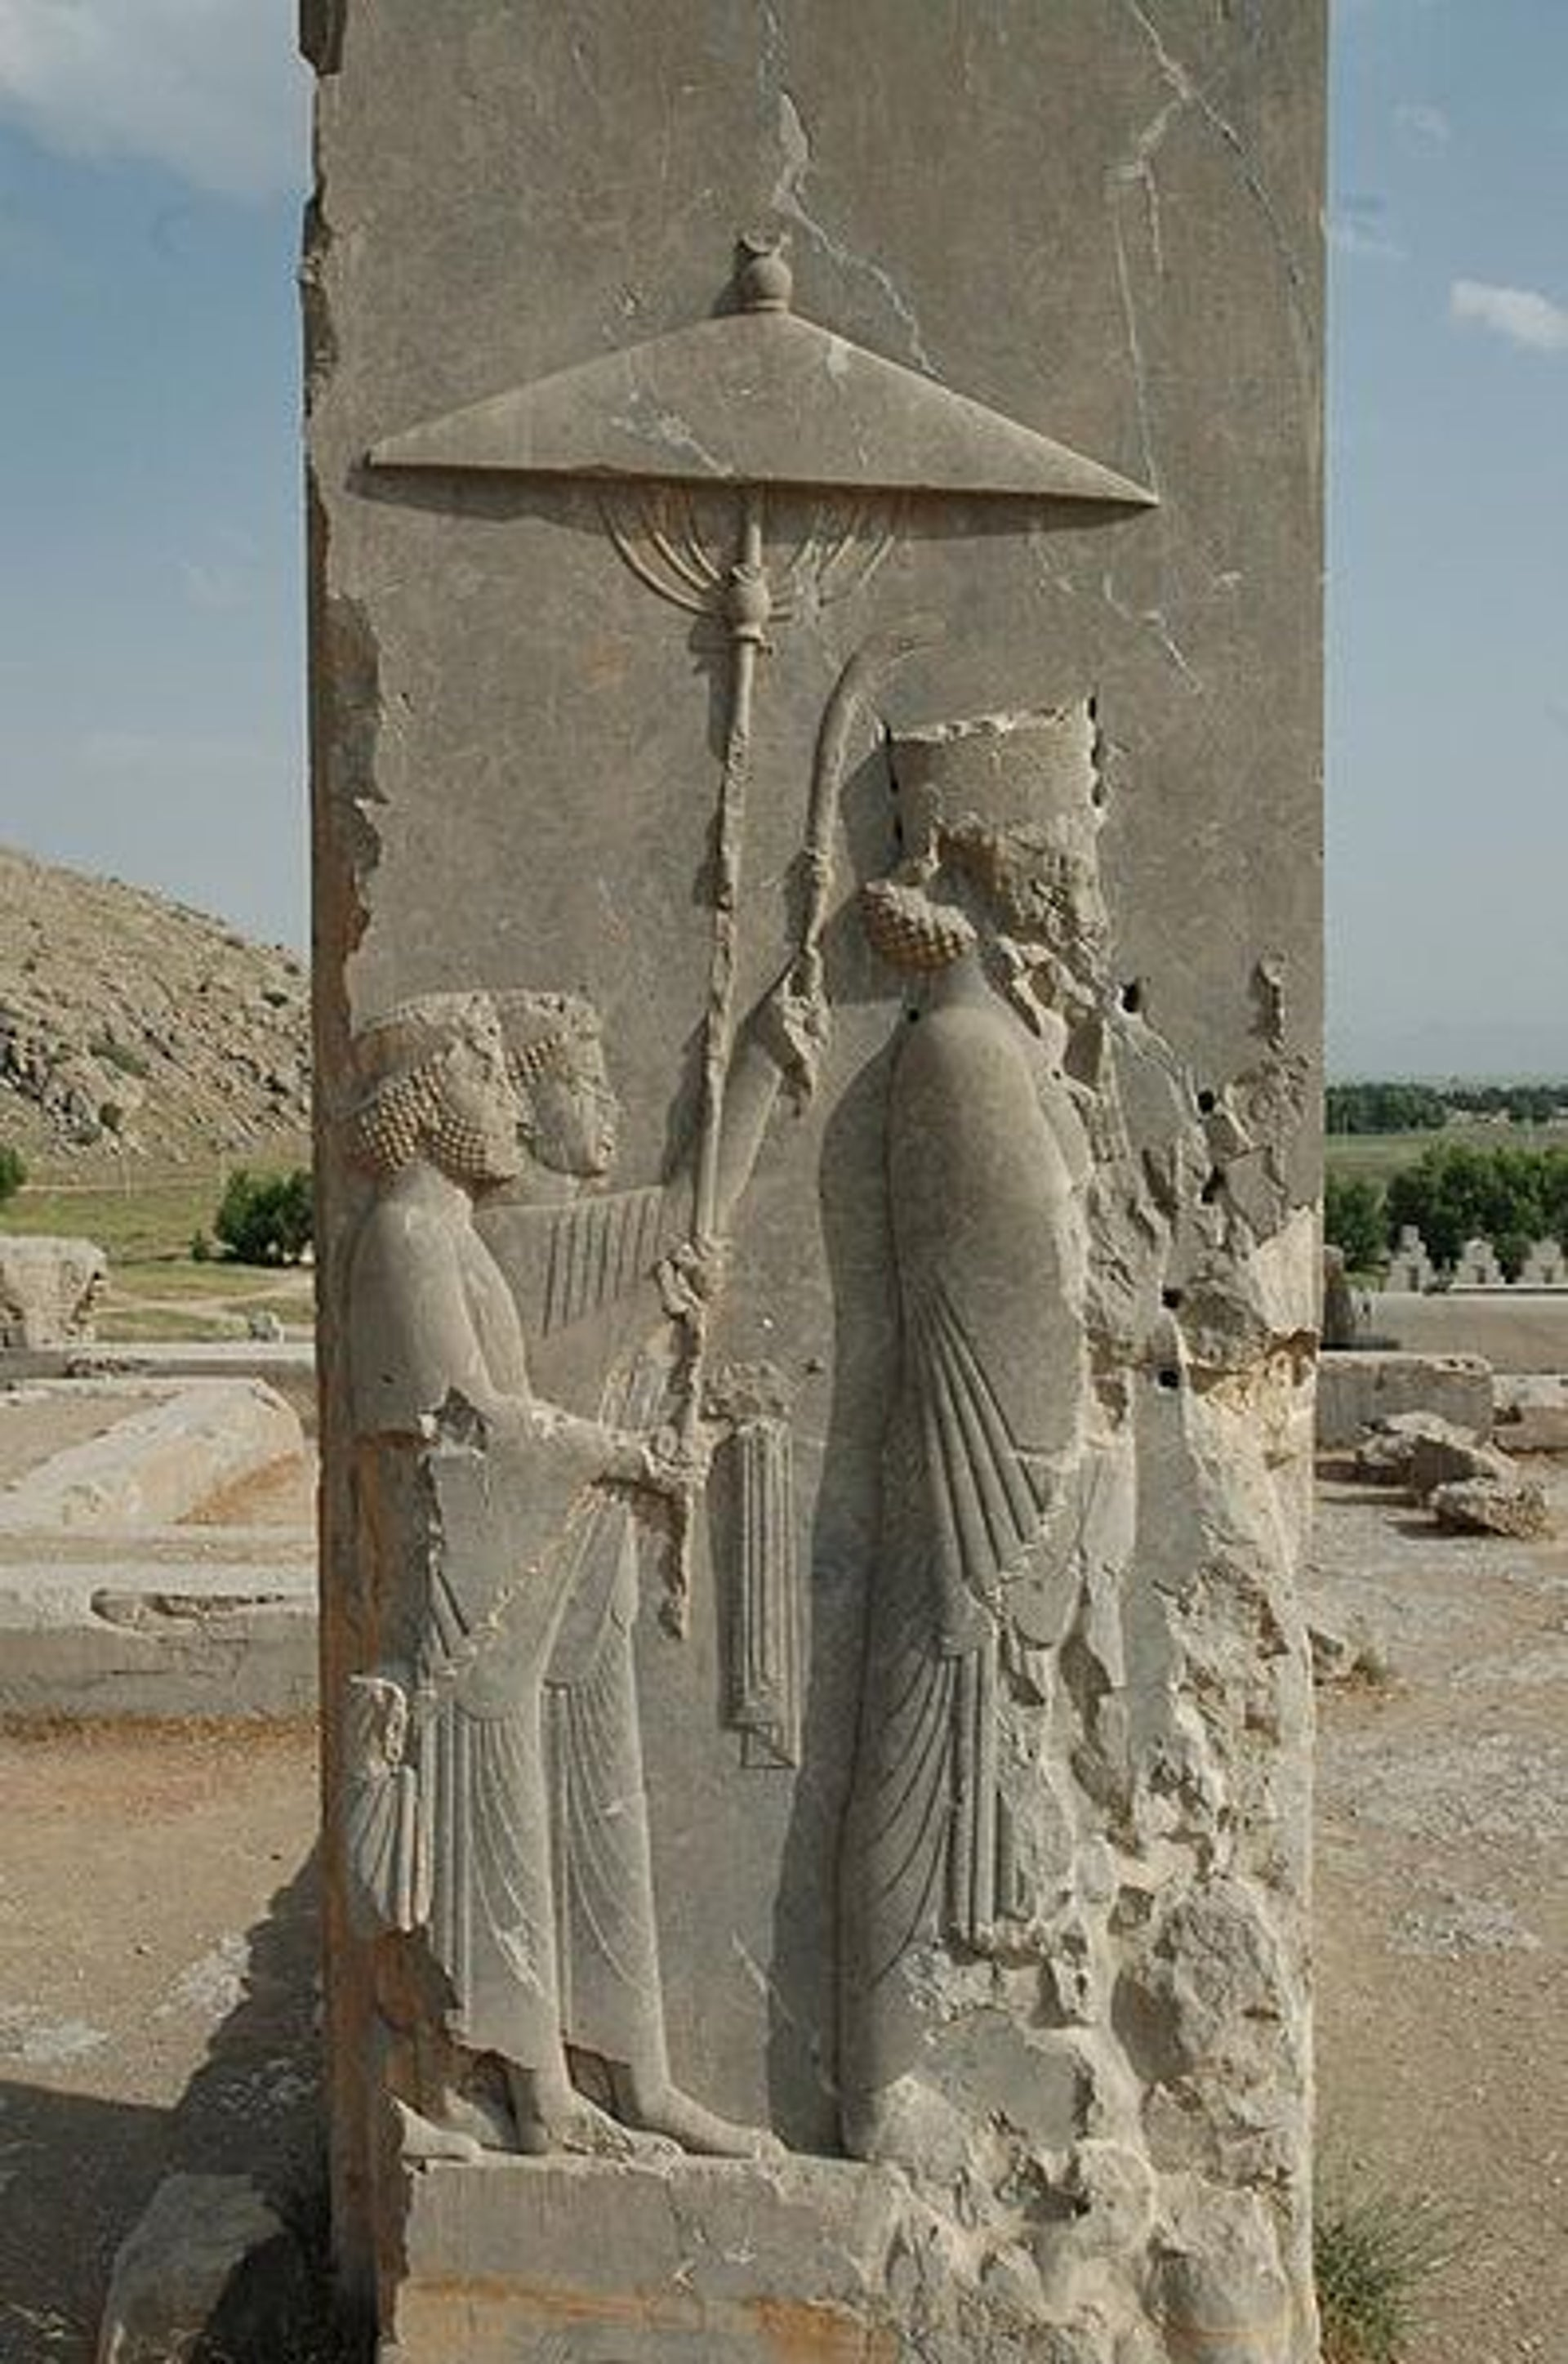 Relief of the Persian king Xerxes (485-465 BC) in the doorway of his palace at Persepolis, modern-day Iran. The bearers of the parasol and the towel-and flywhisk symbolize the royalty and power of the monarch.